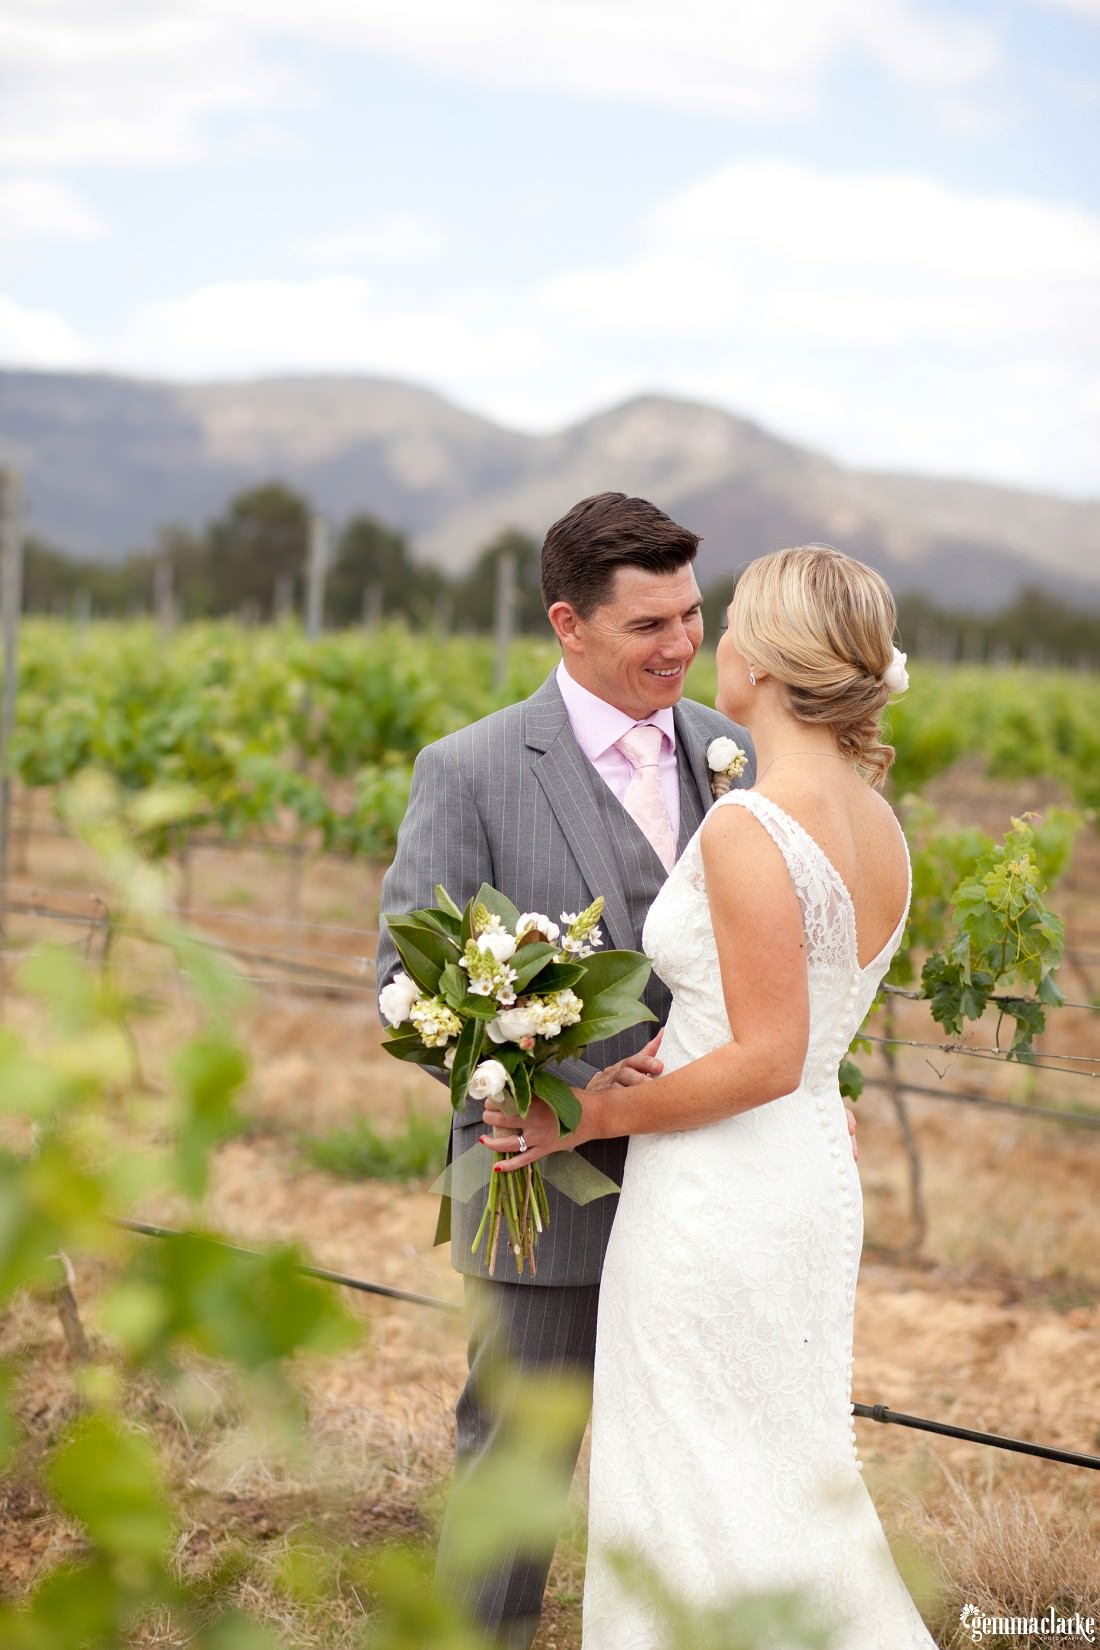 gemmaclarkephotography_french-wedding-in-australia_sally-and-scott_0025